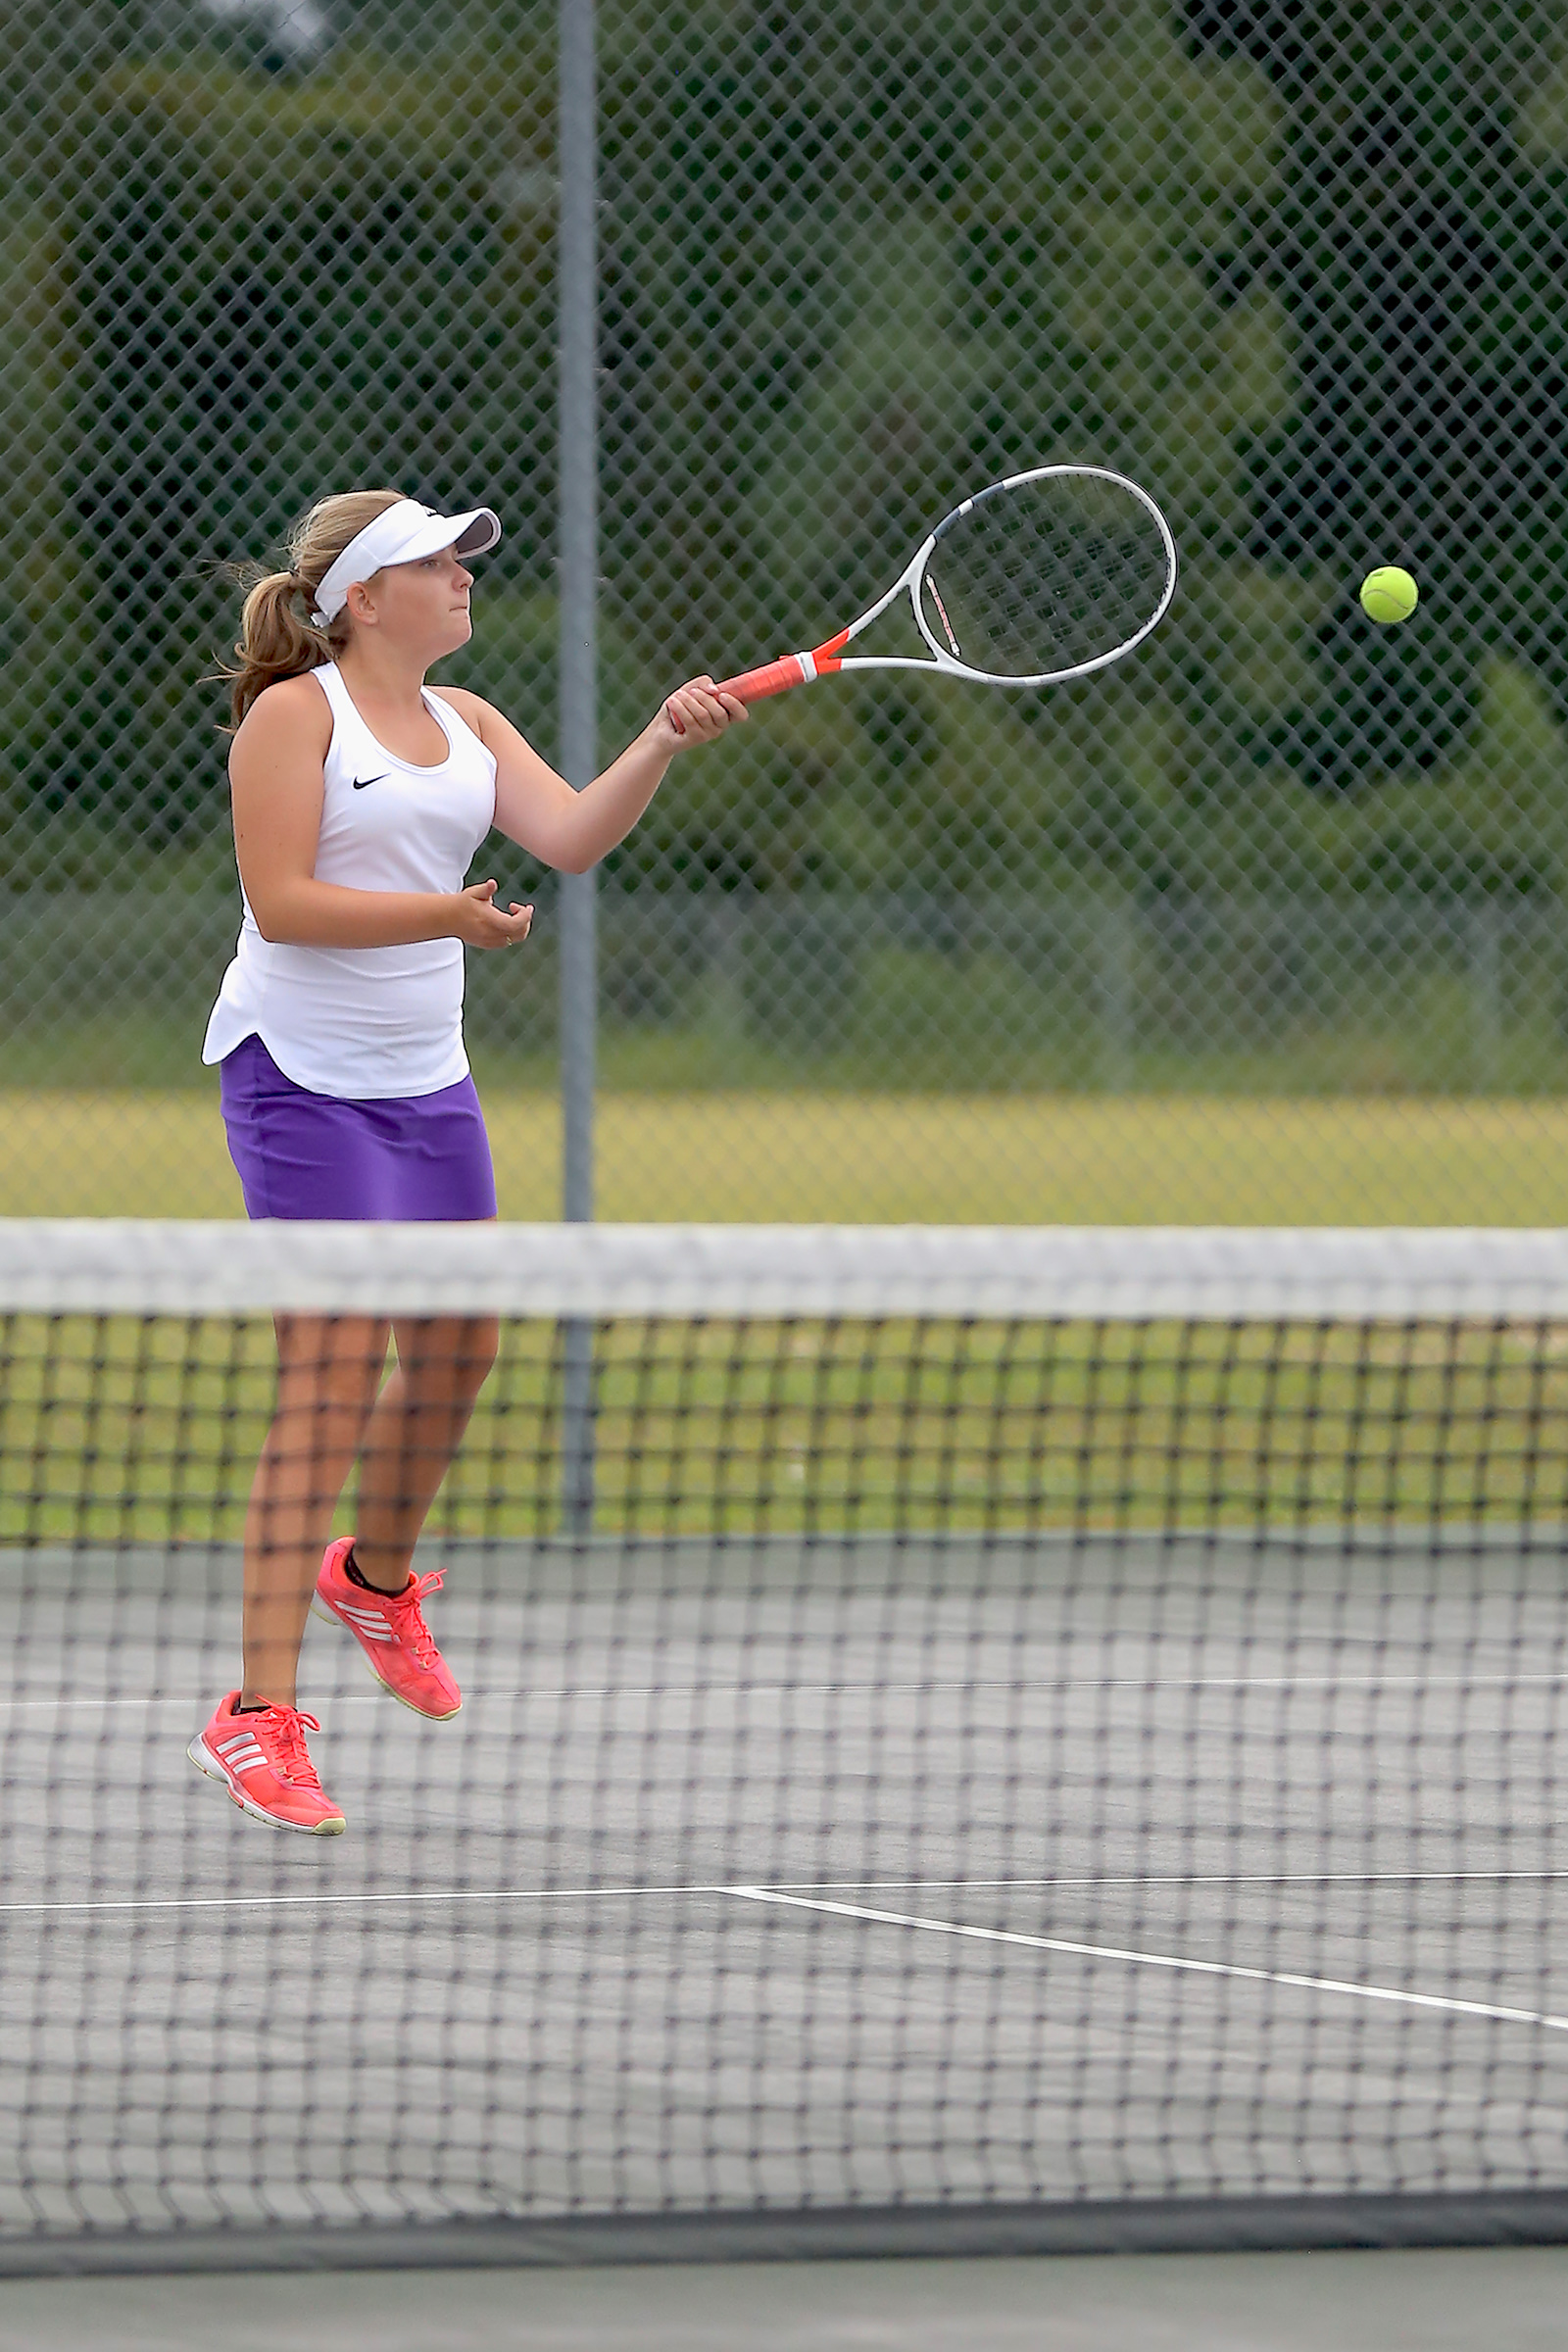 East Columbus v West Bladen 2017 Tennis 5